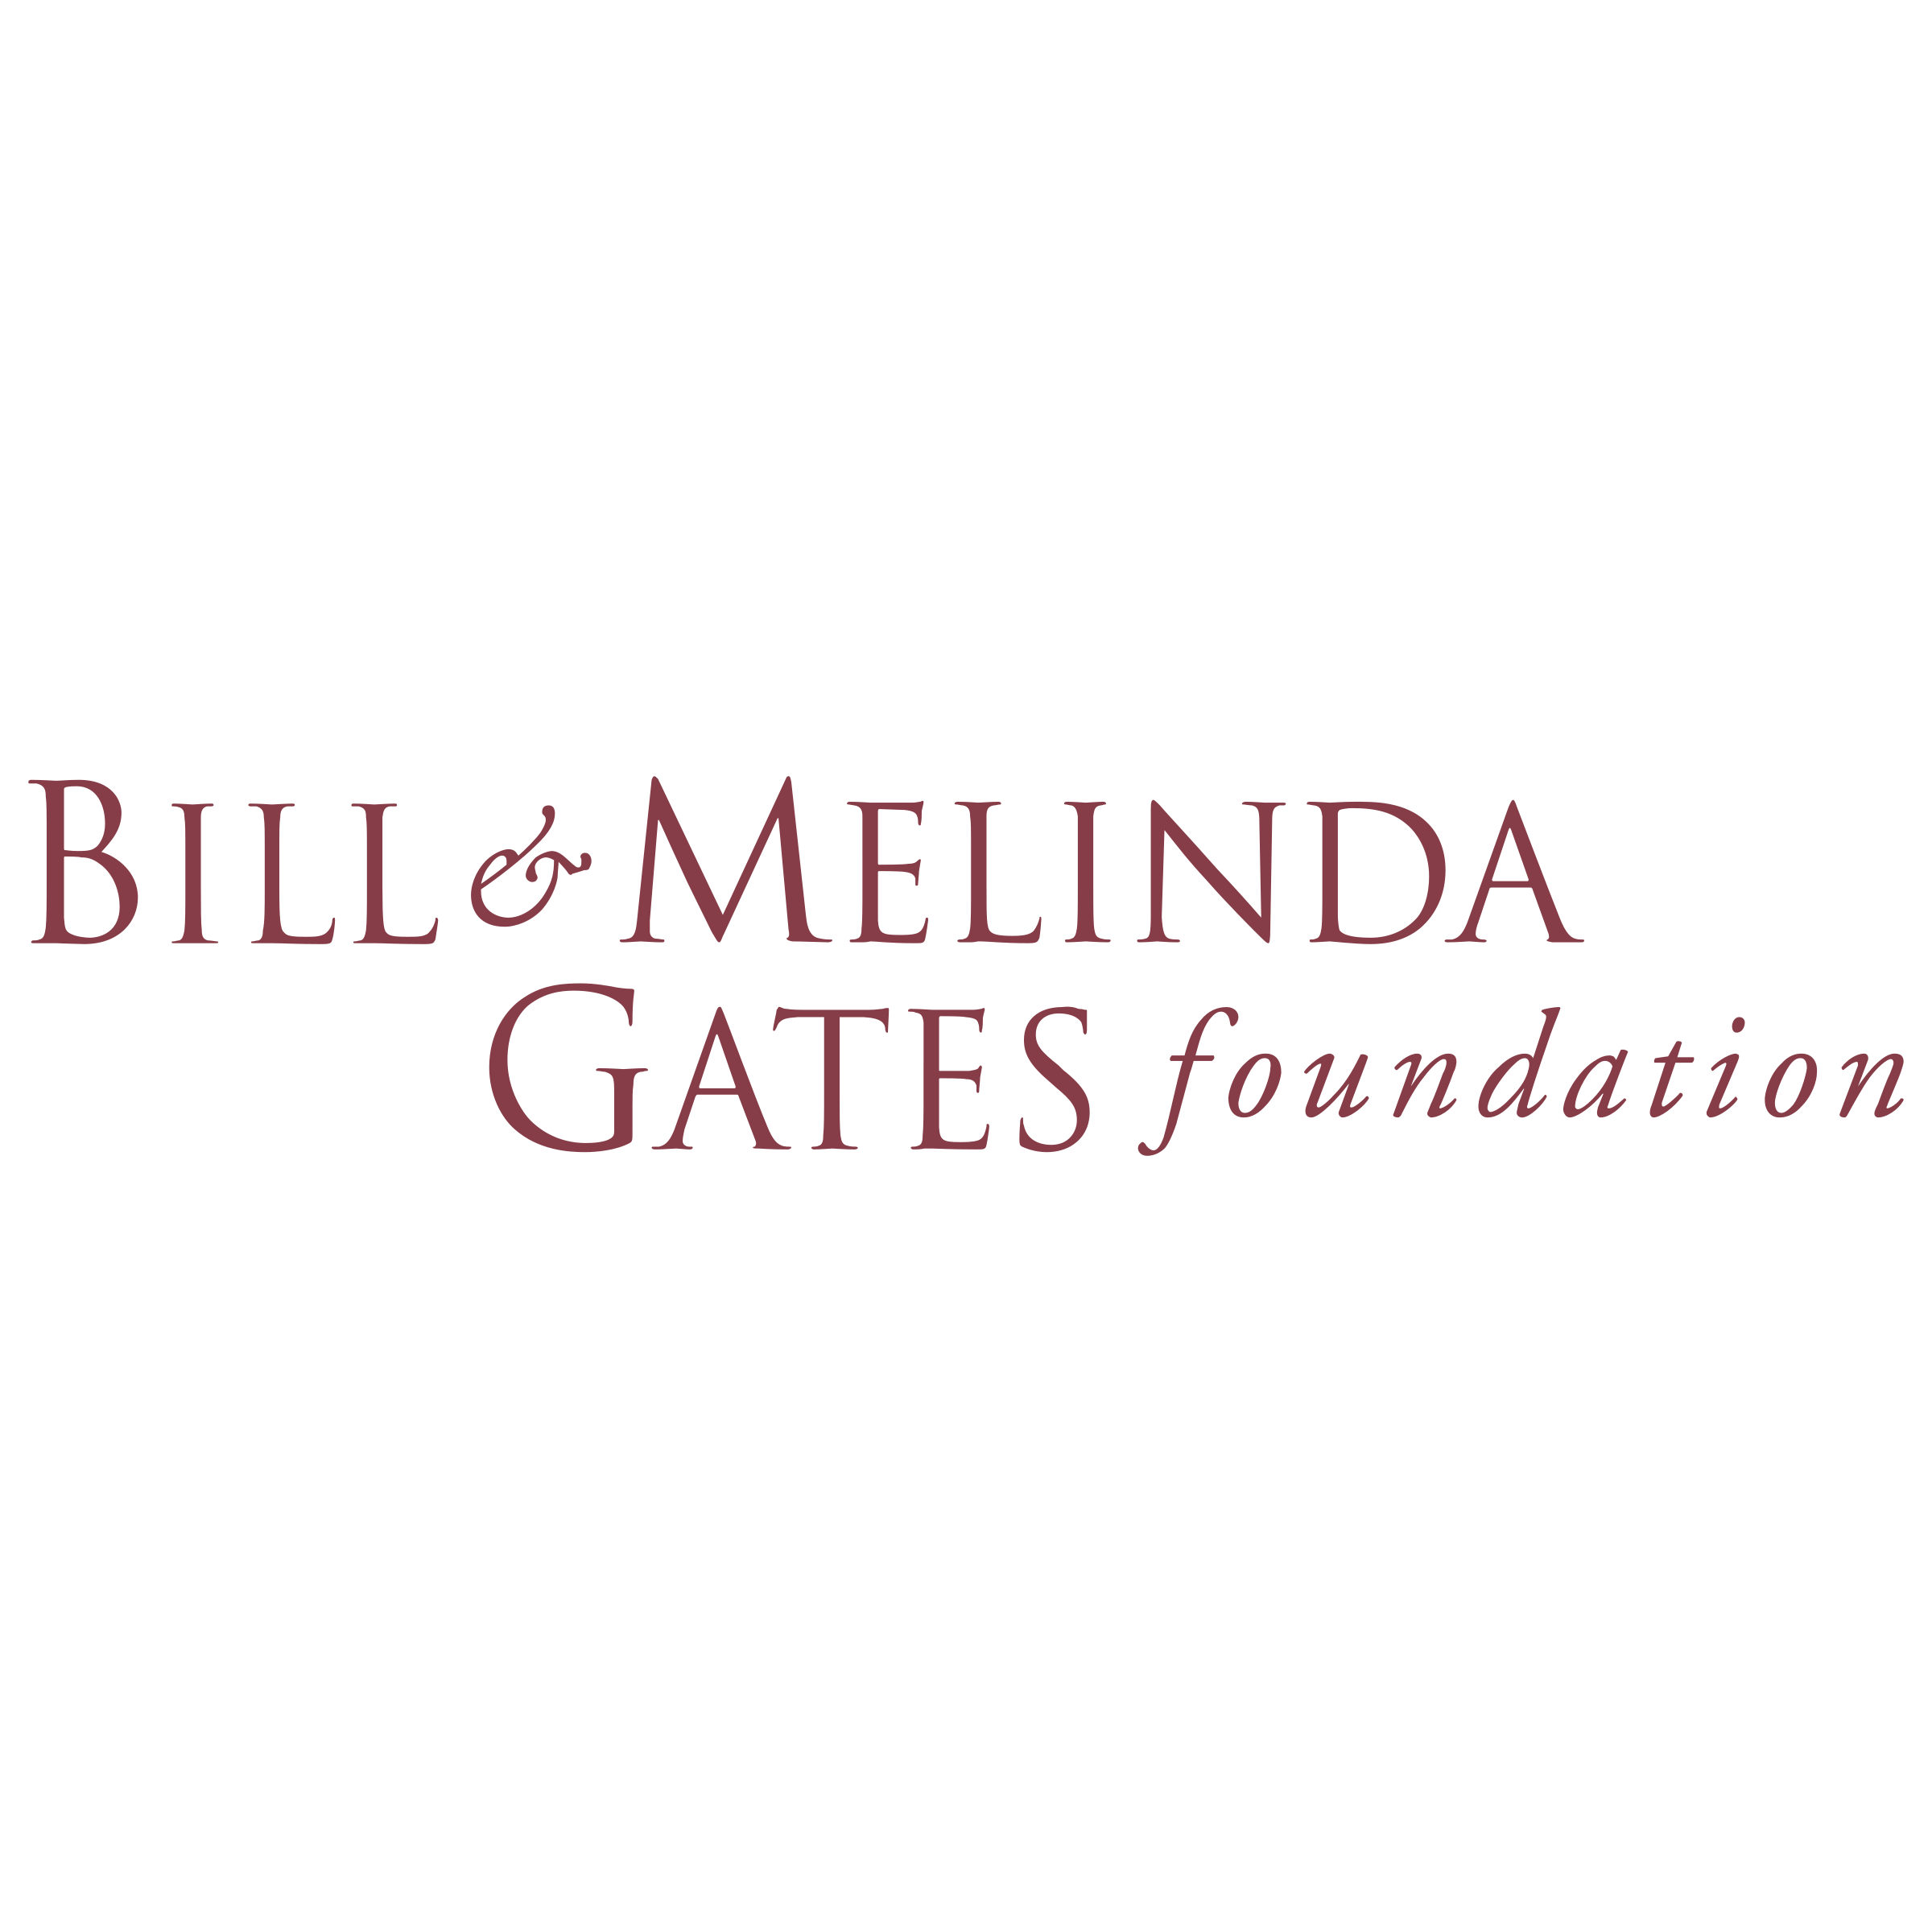 bill-melinda-gates-foundation-logo-png-transparent.png